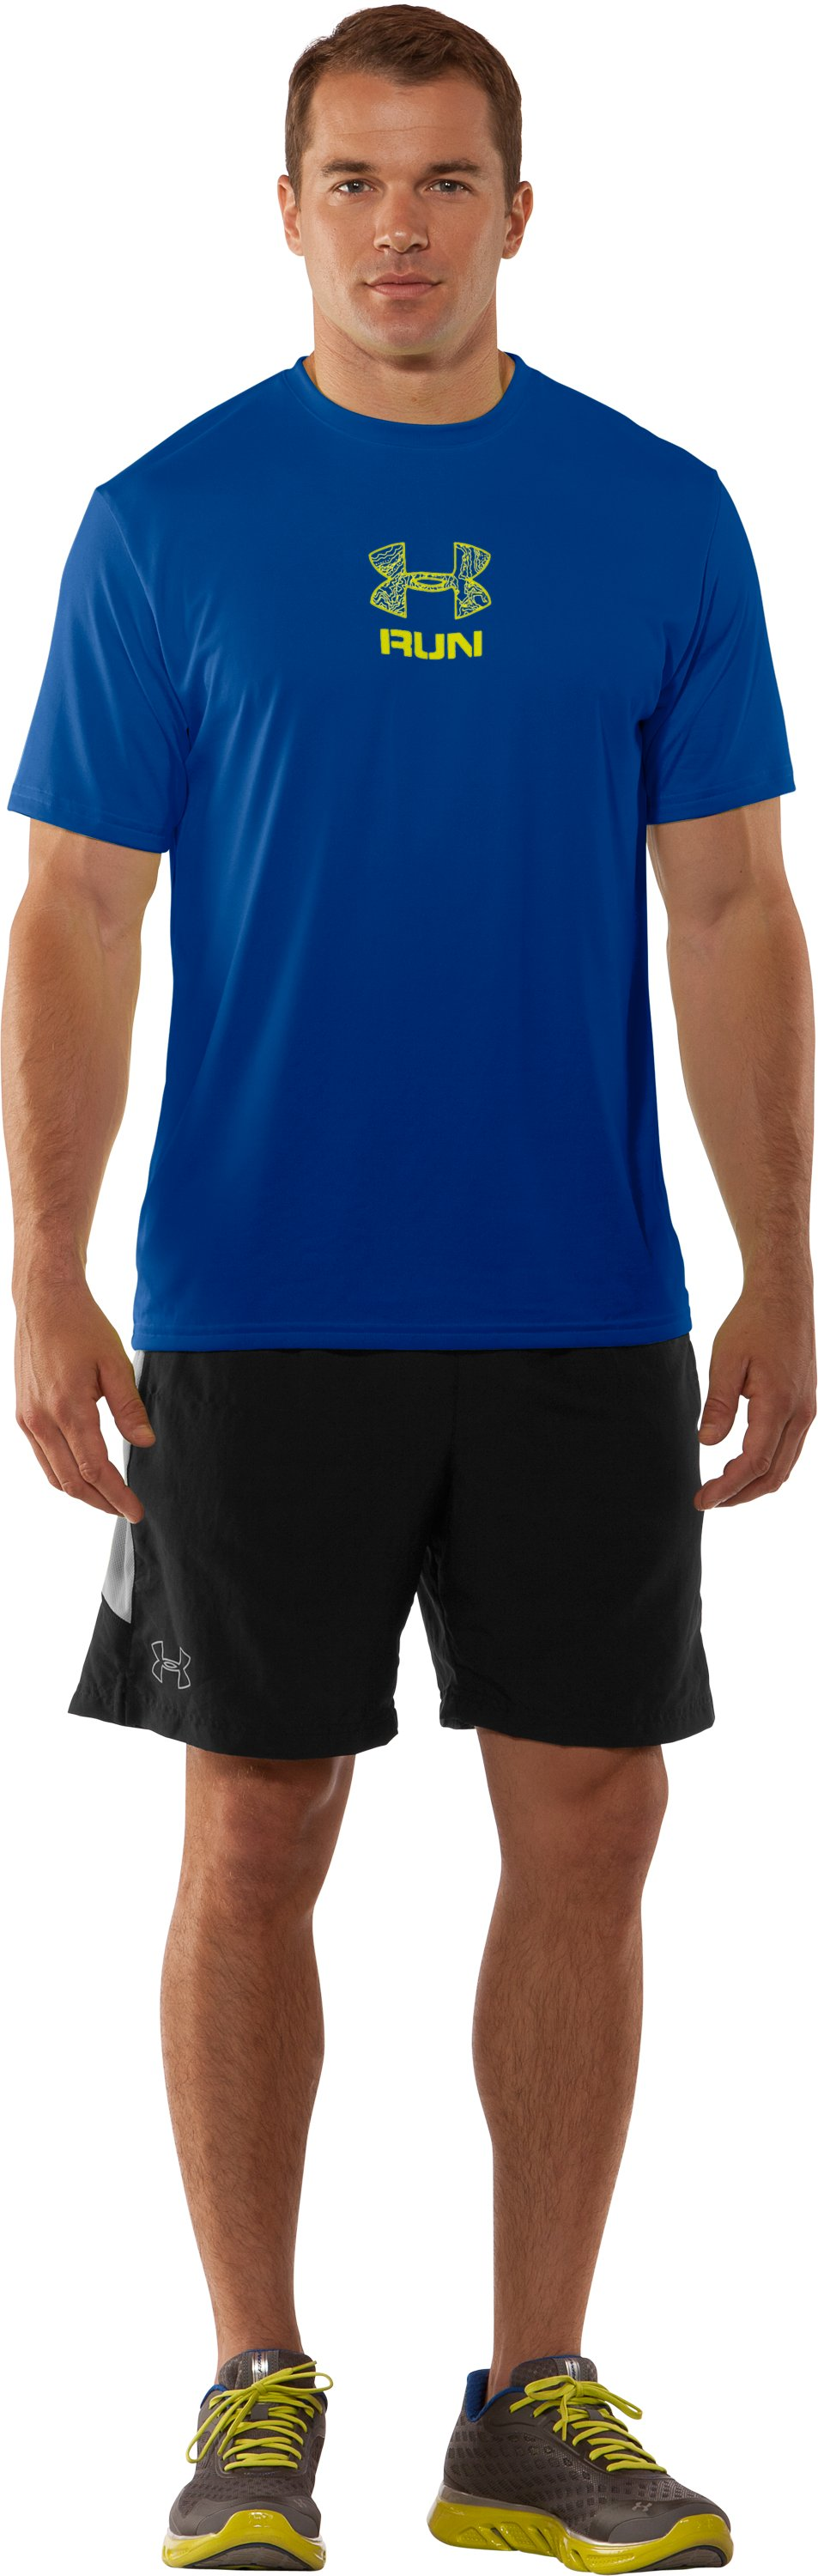 Men's UA Tough Run Graphic T-Shirt, Squadron, zoomed image